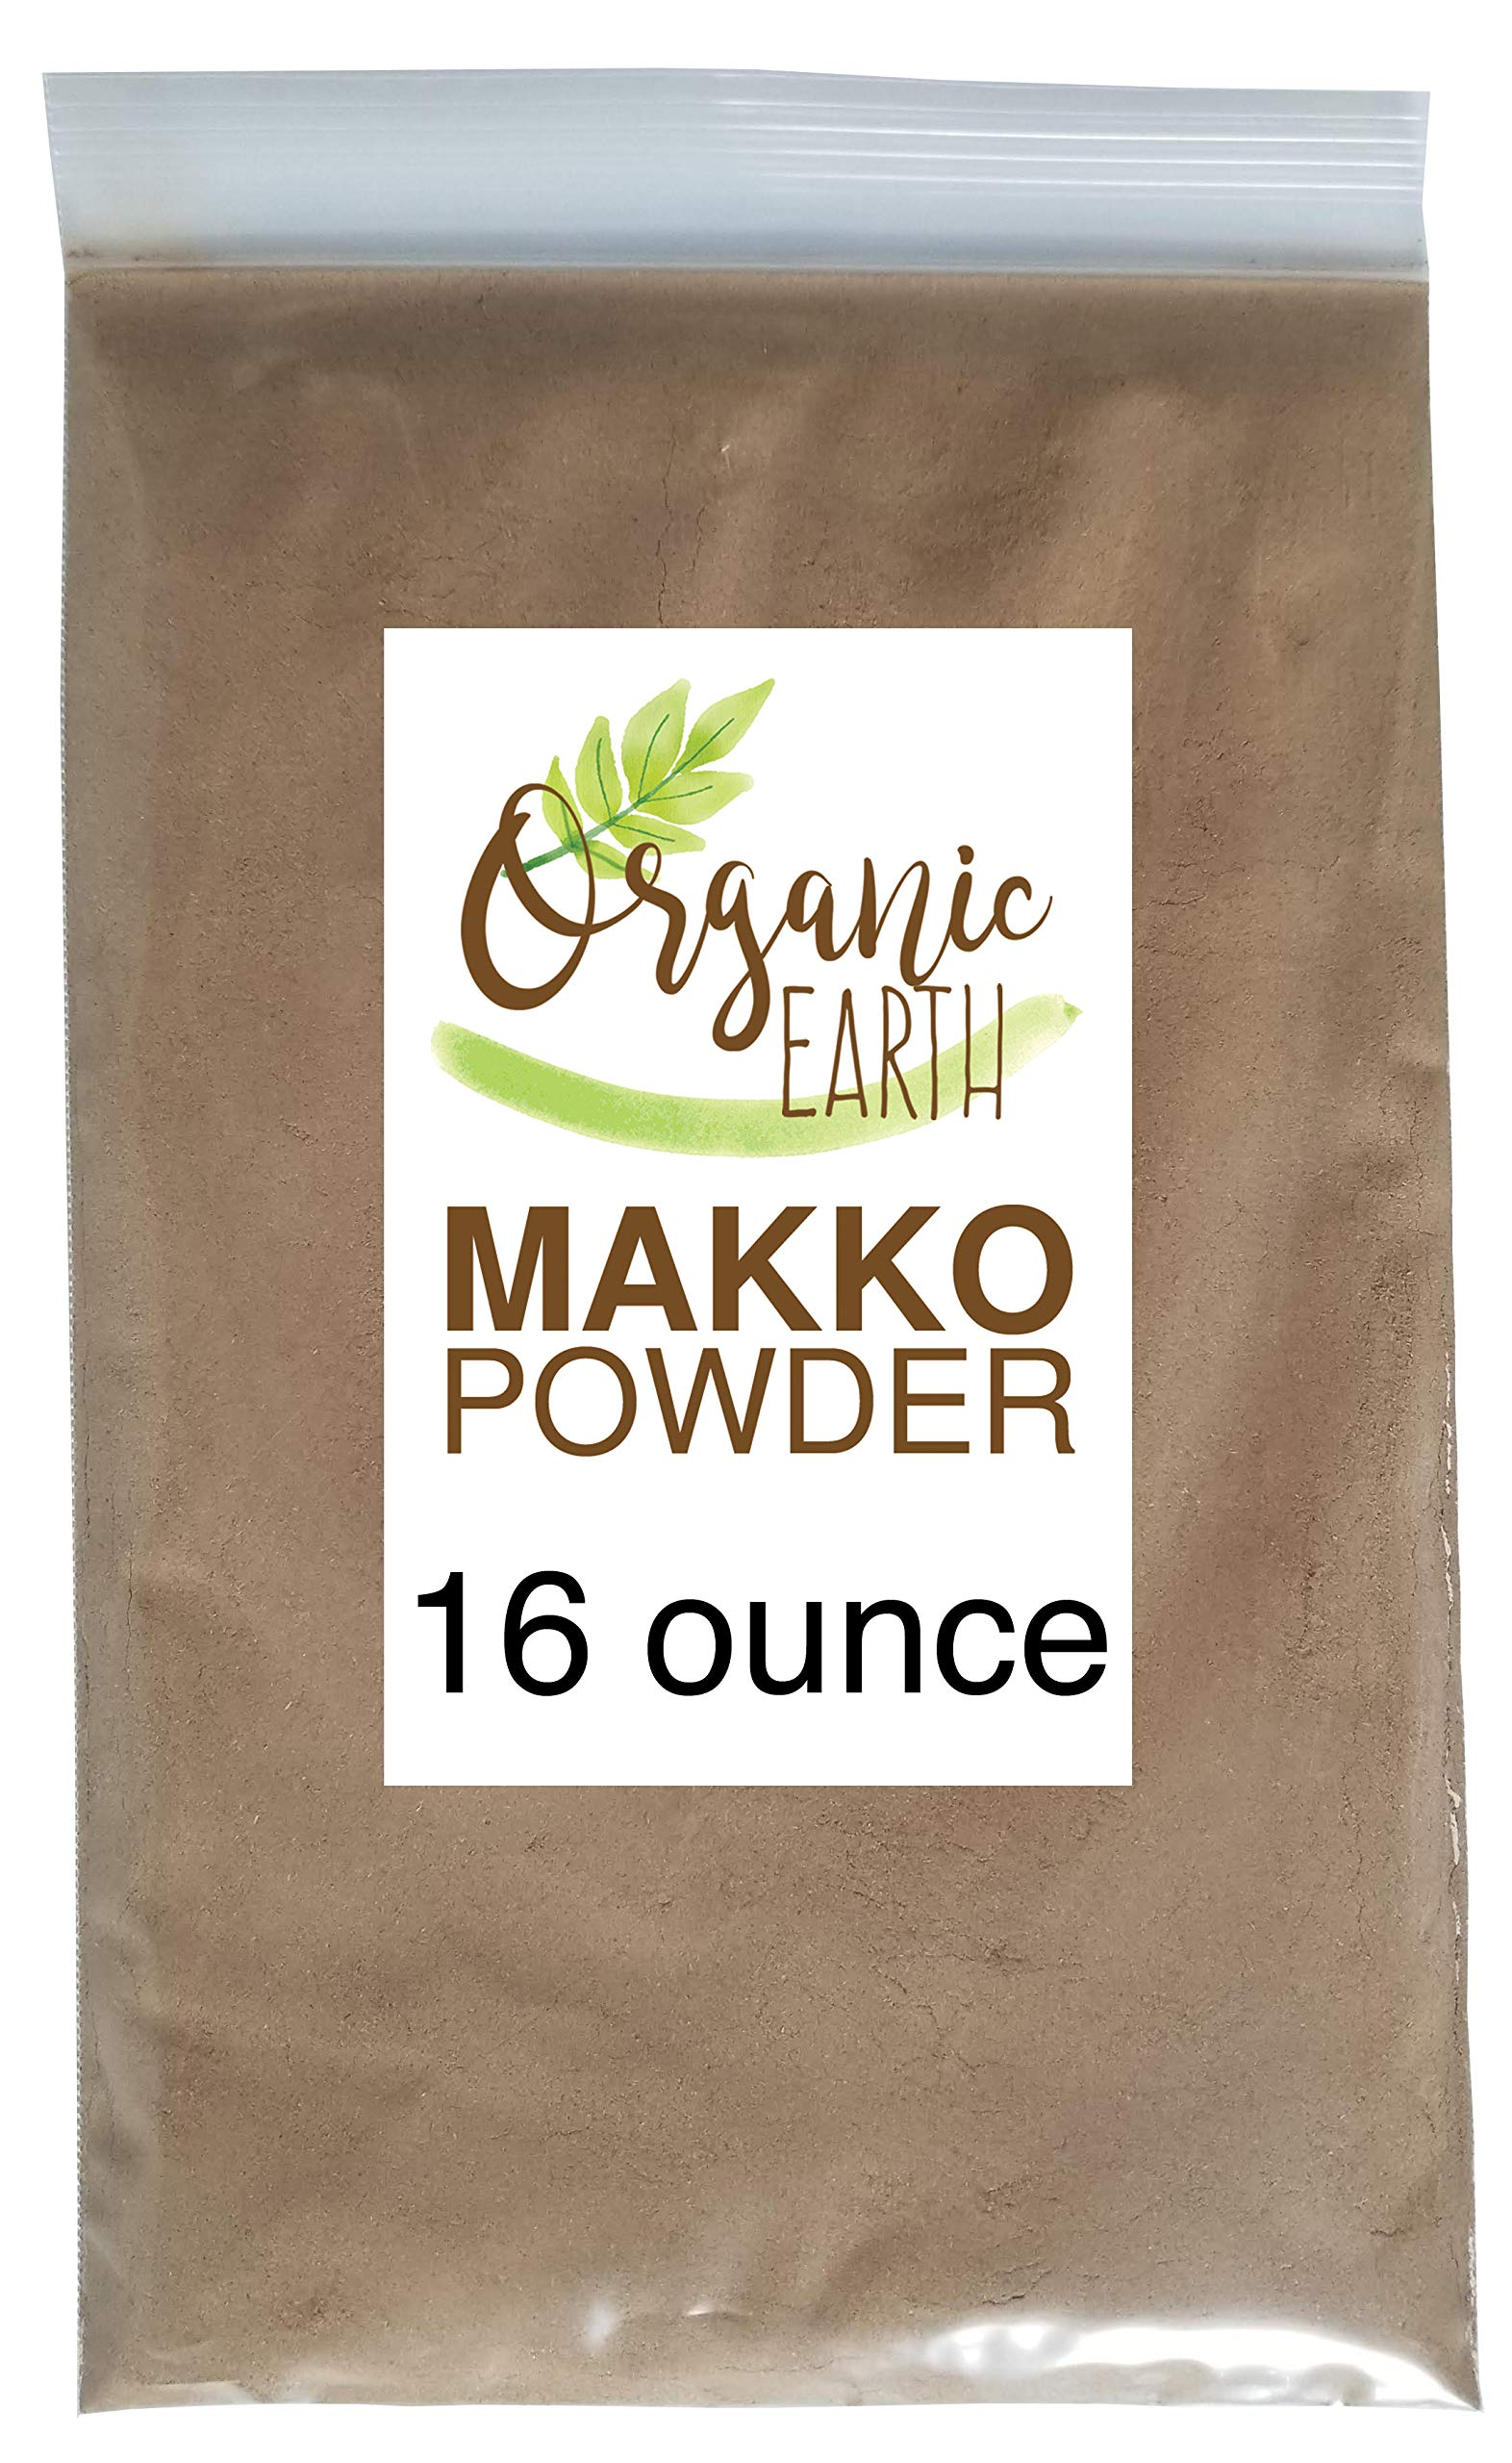 Organic Earth Makko Powder - High Grade Premium Incense for Making Cones and Coil Incense DIY Gift 500 Grams (16 Ounce)